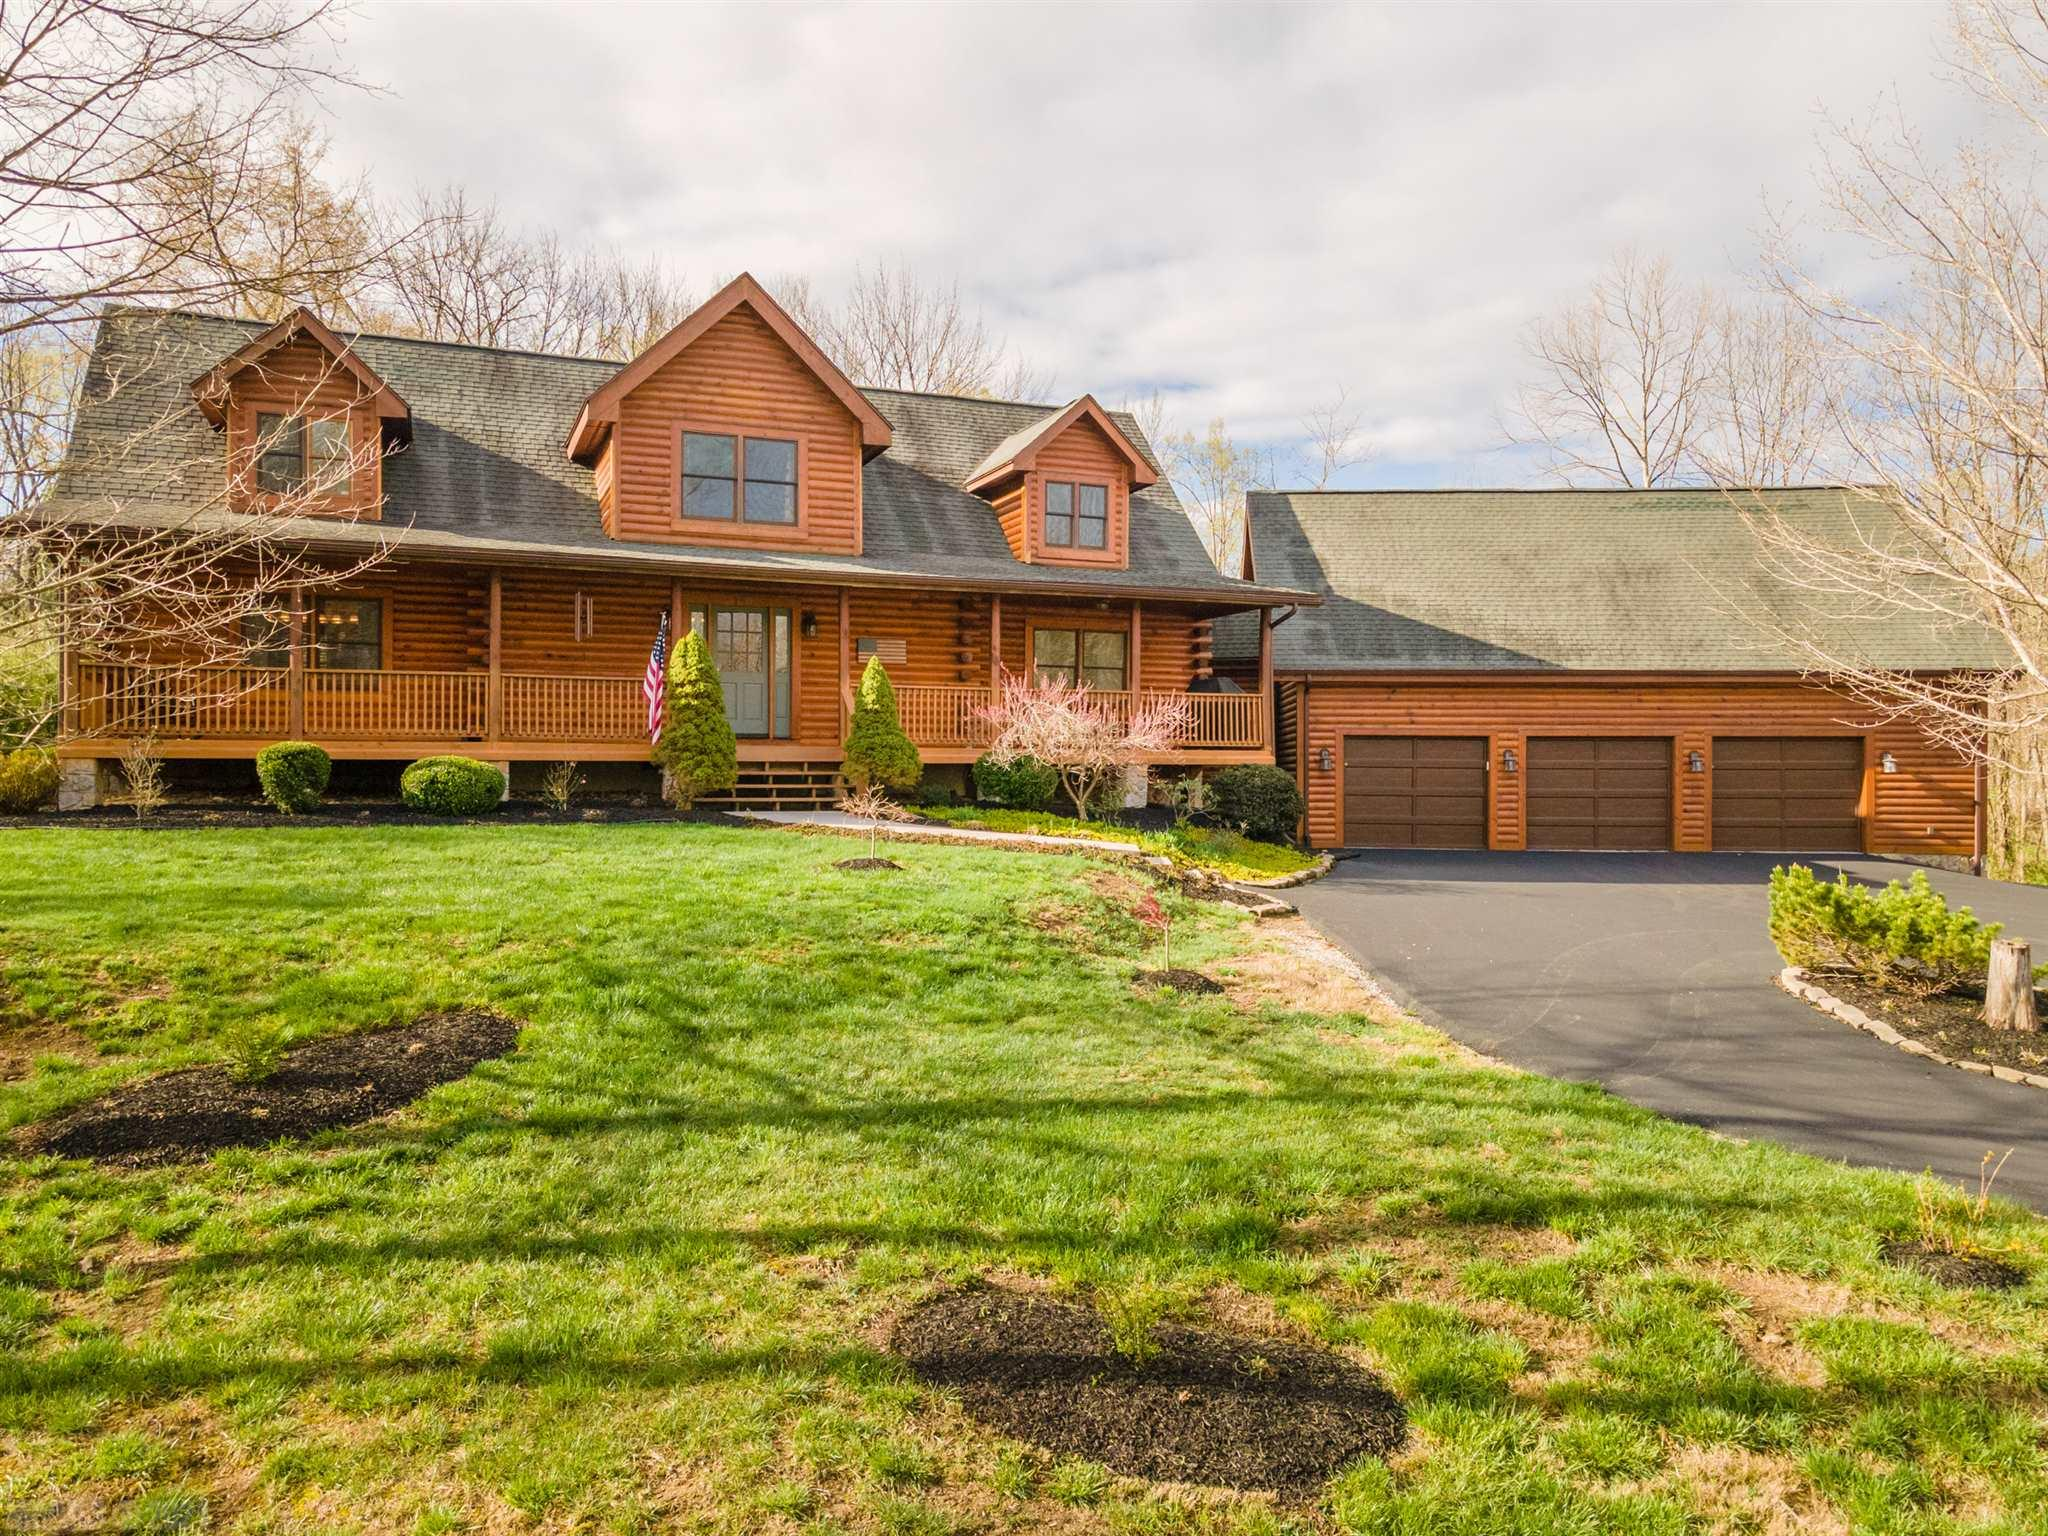 Featuring many new updates, this stunning 4 BR, 3.5 Bath log home on 1.34 acres is ideally located 1.6 miles from VT and offers quick easy access to I-460 and charming downtown Blacksburg!  As you walk through the front door, prepare to be wowed by the massive living room with vaulted ceilings, stone gas fireplace, and beautiful hardwood floors. A gourmet kitchen features granite counter-tops, stainless steel appliances, gas cook-top, custom cabinets and a breakfast bar. The main floor master suite boasts a large walk-in closet and beautiful master bath with soaking tub and double vanity sink. Upstairs you will find a loft, two large bedrooms, and a full bathroom. A family room, full bathroom, and a bedroom over the triple car garage is the perfect retreat for guests or as an in-law suite. And the open floor plan, expansive covered porch, brand new deck, & fenced level yard are great for entertaining friends and family! Don't miss your chance to make this your forever home!